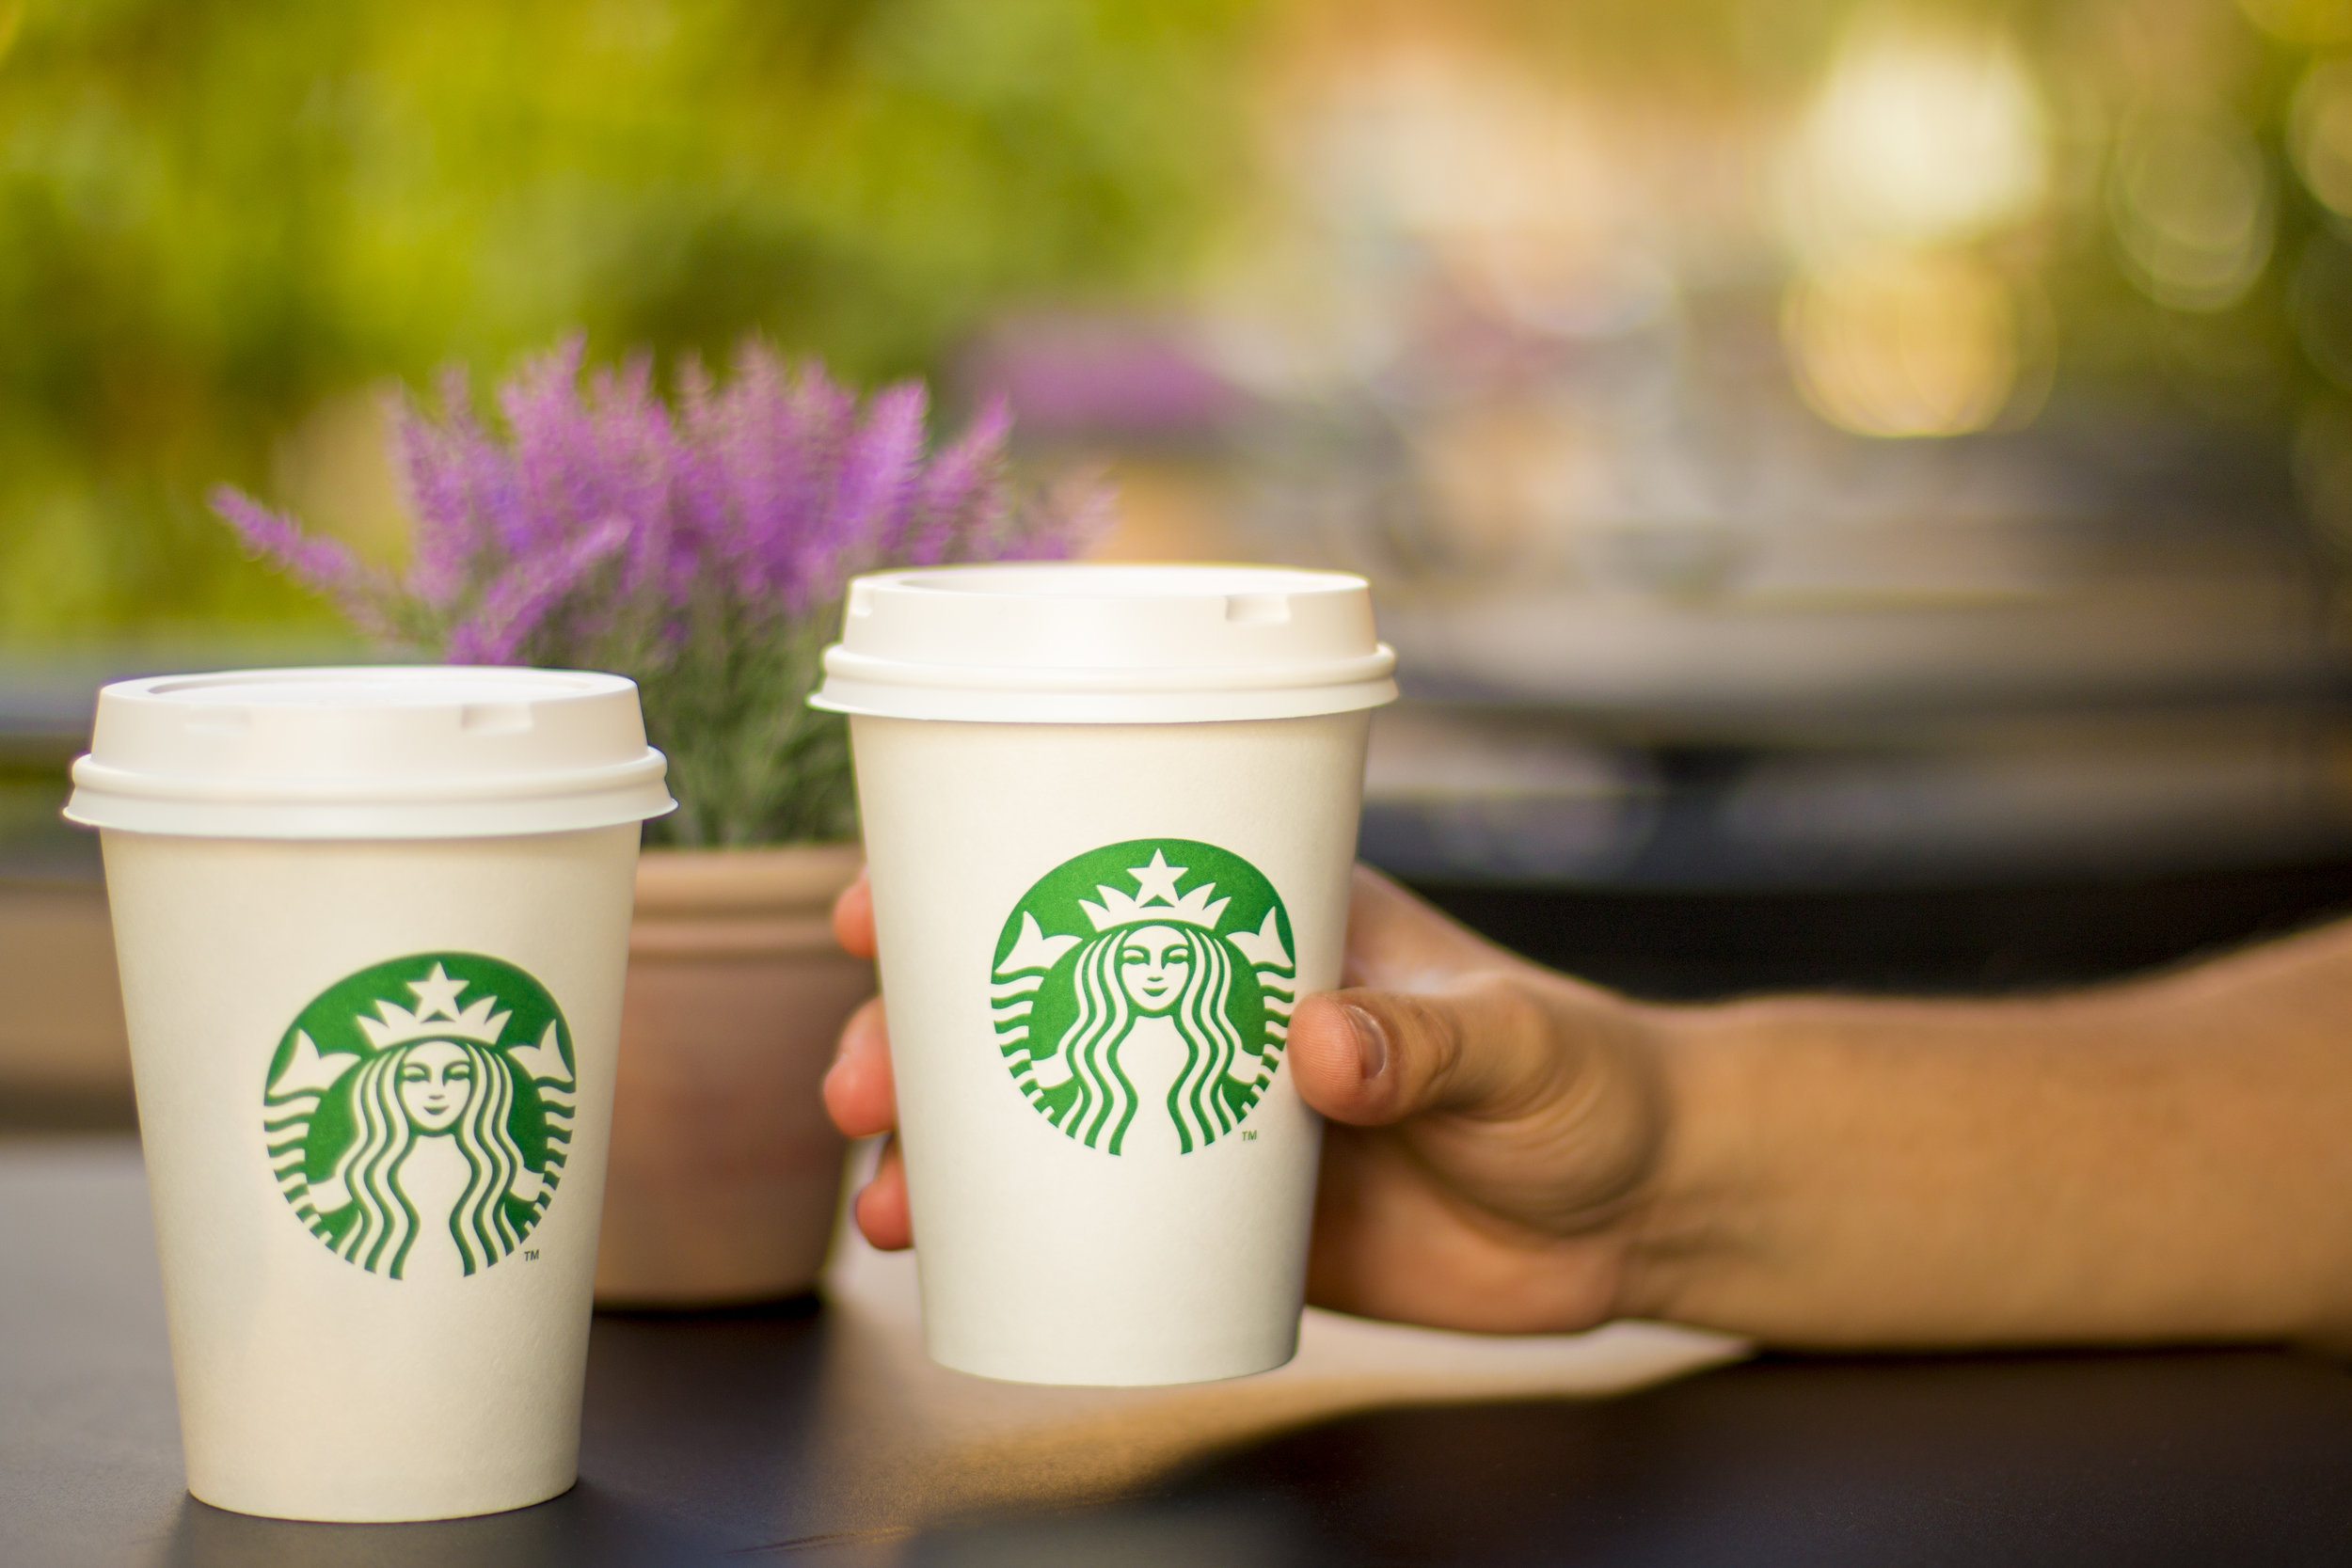 At around $4 a cup, Starbucks coffee and lattes are not only expensive, but the cups are not easily recyclable. It's a lose-lose situation.